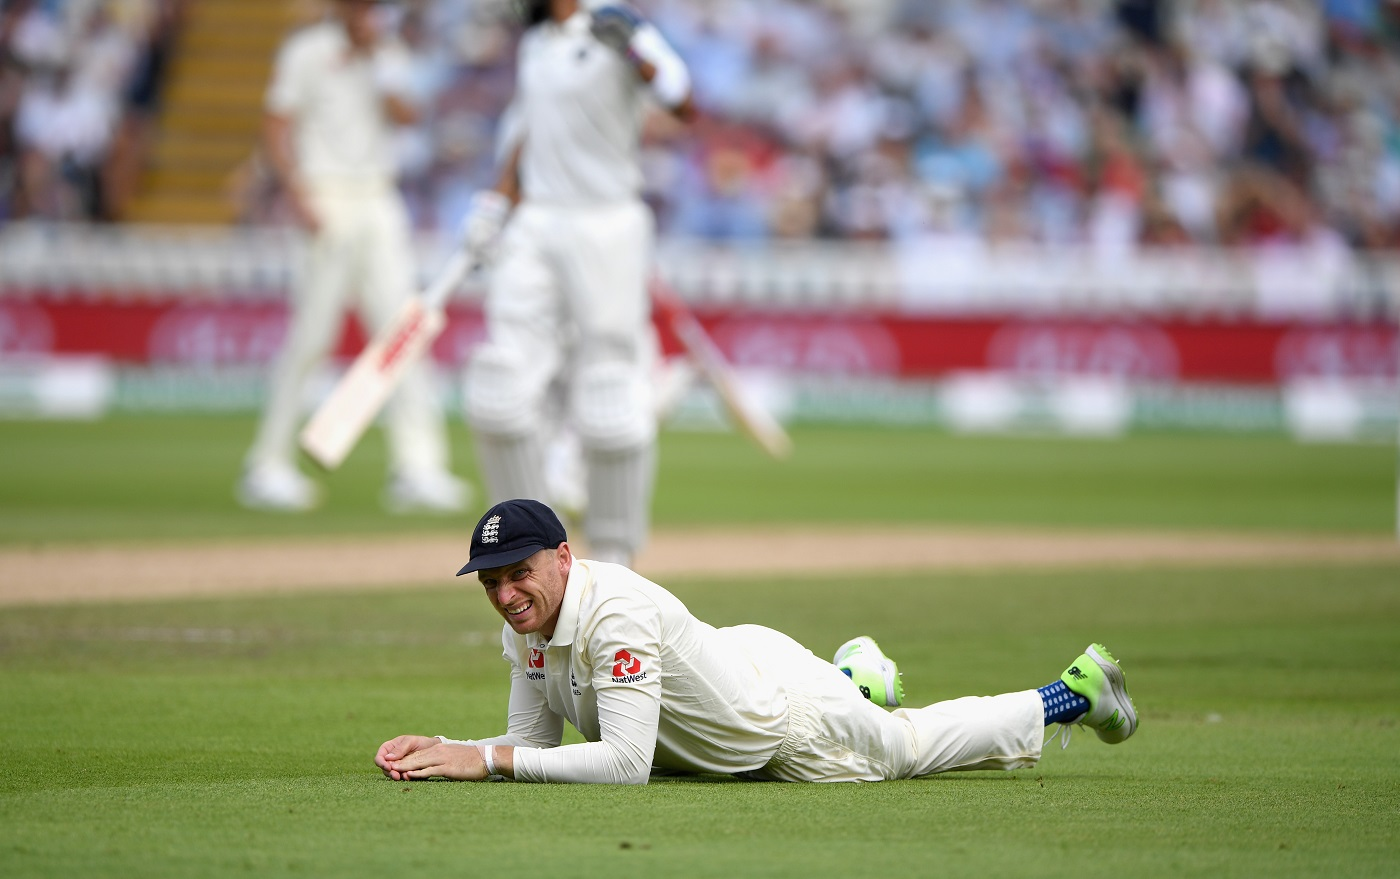 ENG vs IND 2018: There's No Magic Answer, Says Jos Buttler On England's Batting Collapses